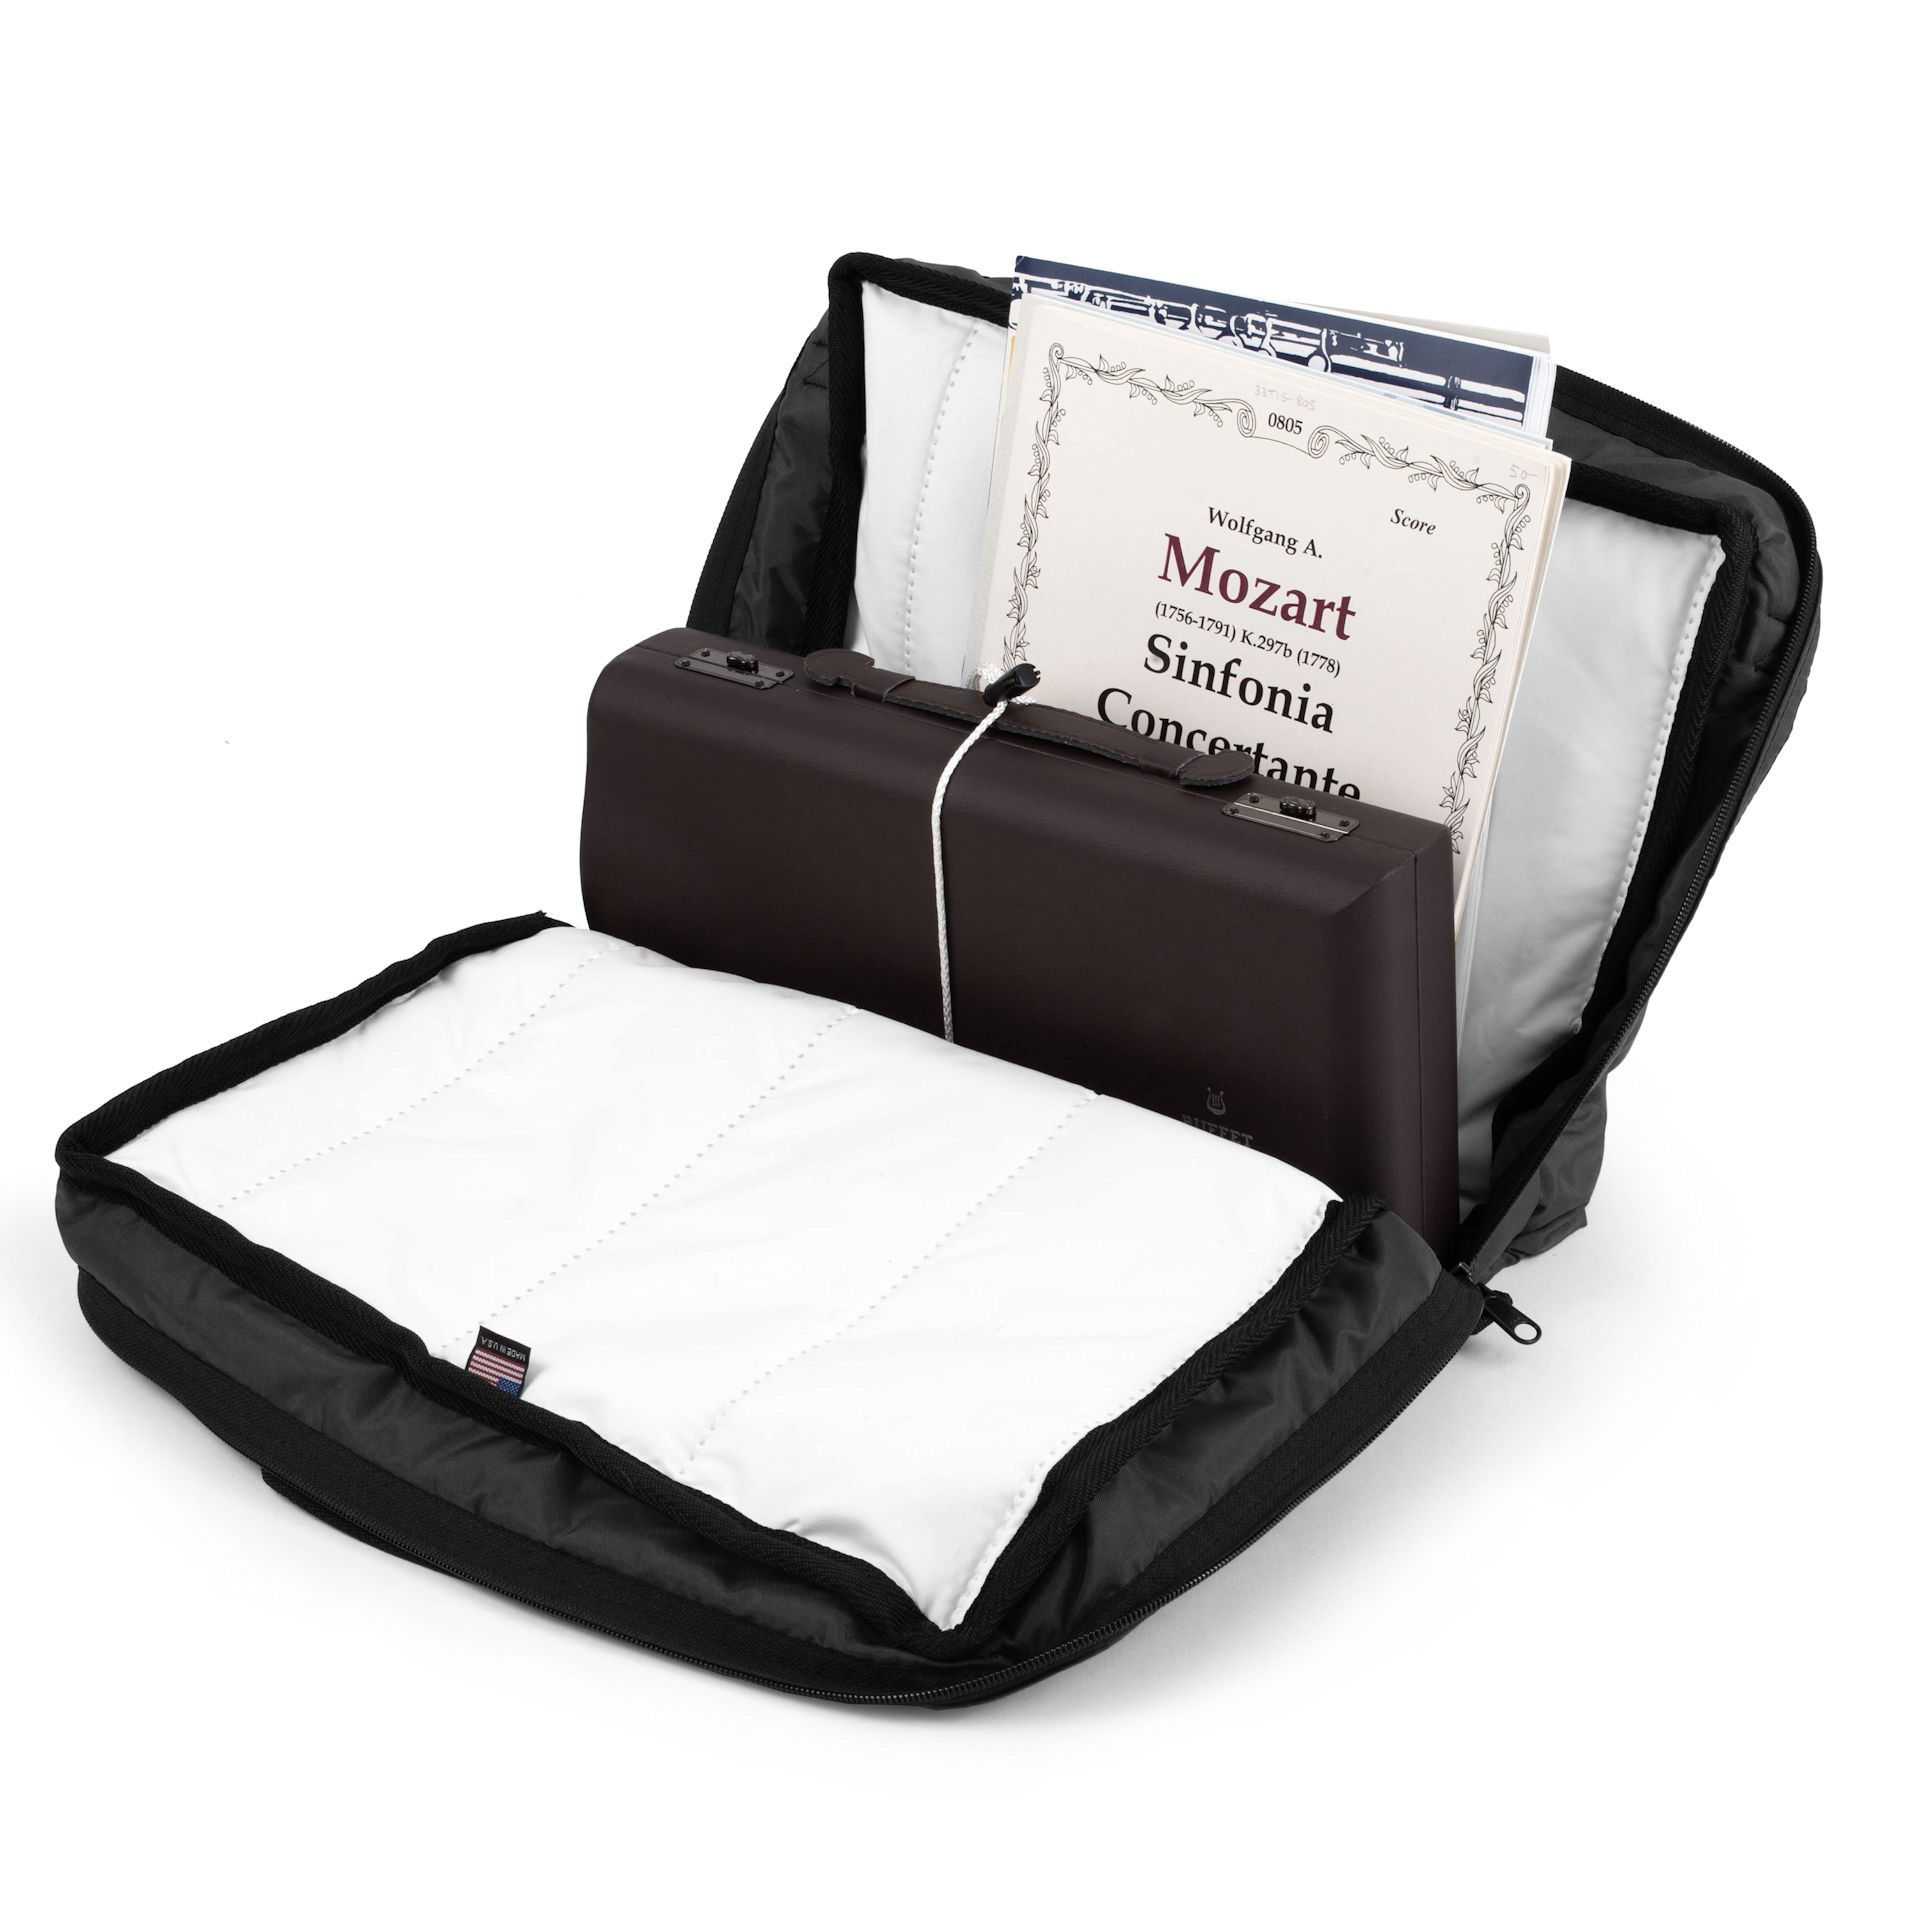 Altieri Clarinet Double Case with Double Pocket CLDP DB 1